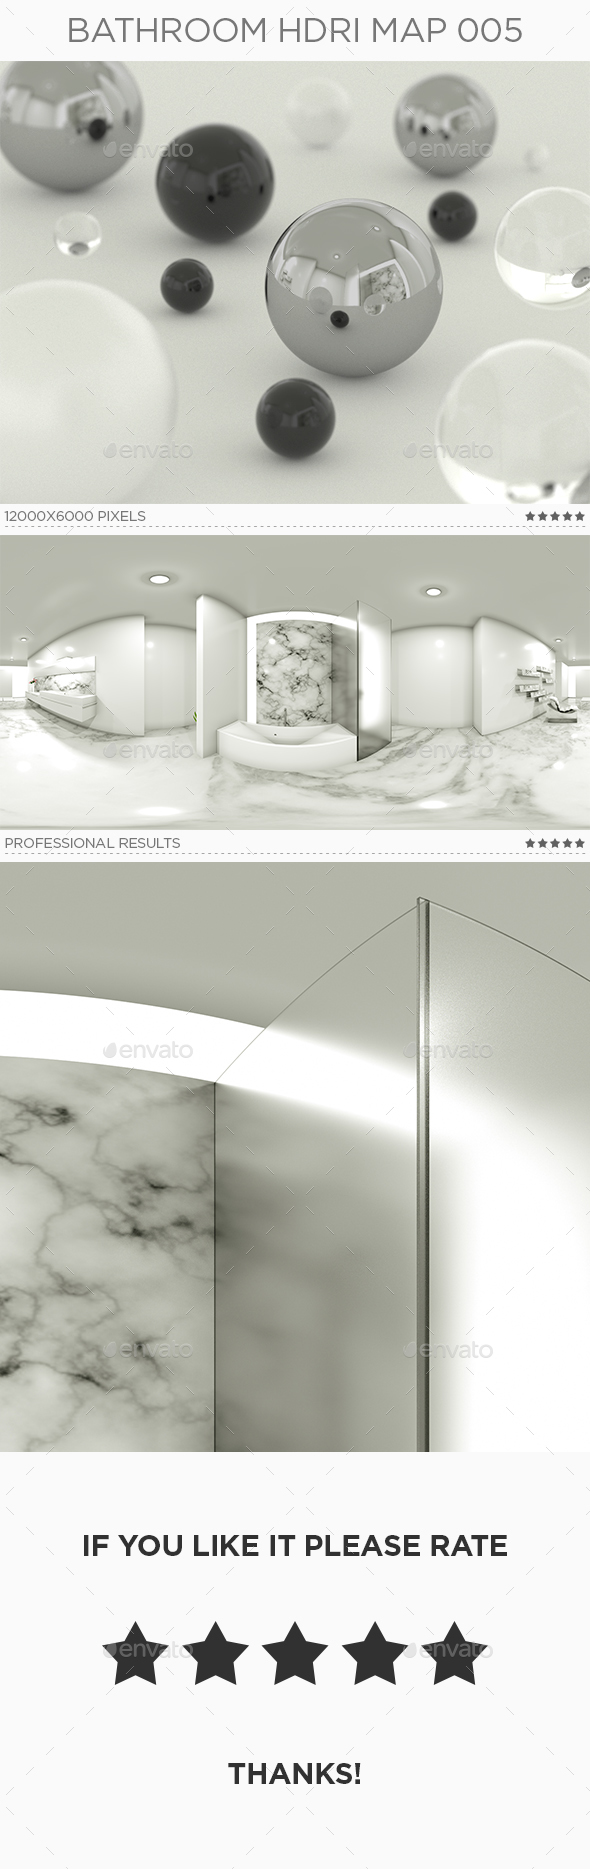 Bathroom HDRi Map 005 - 3DOcean Item for Sale